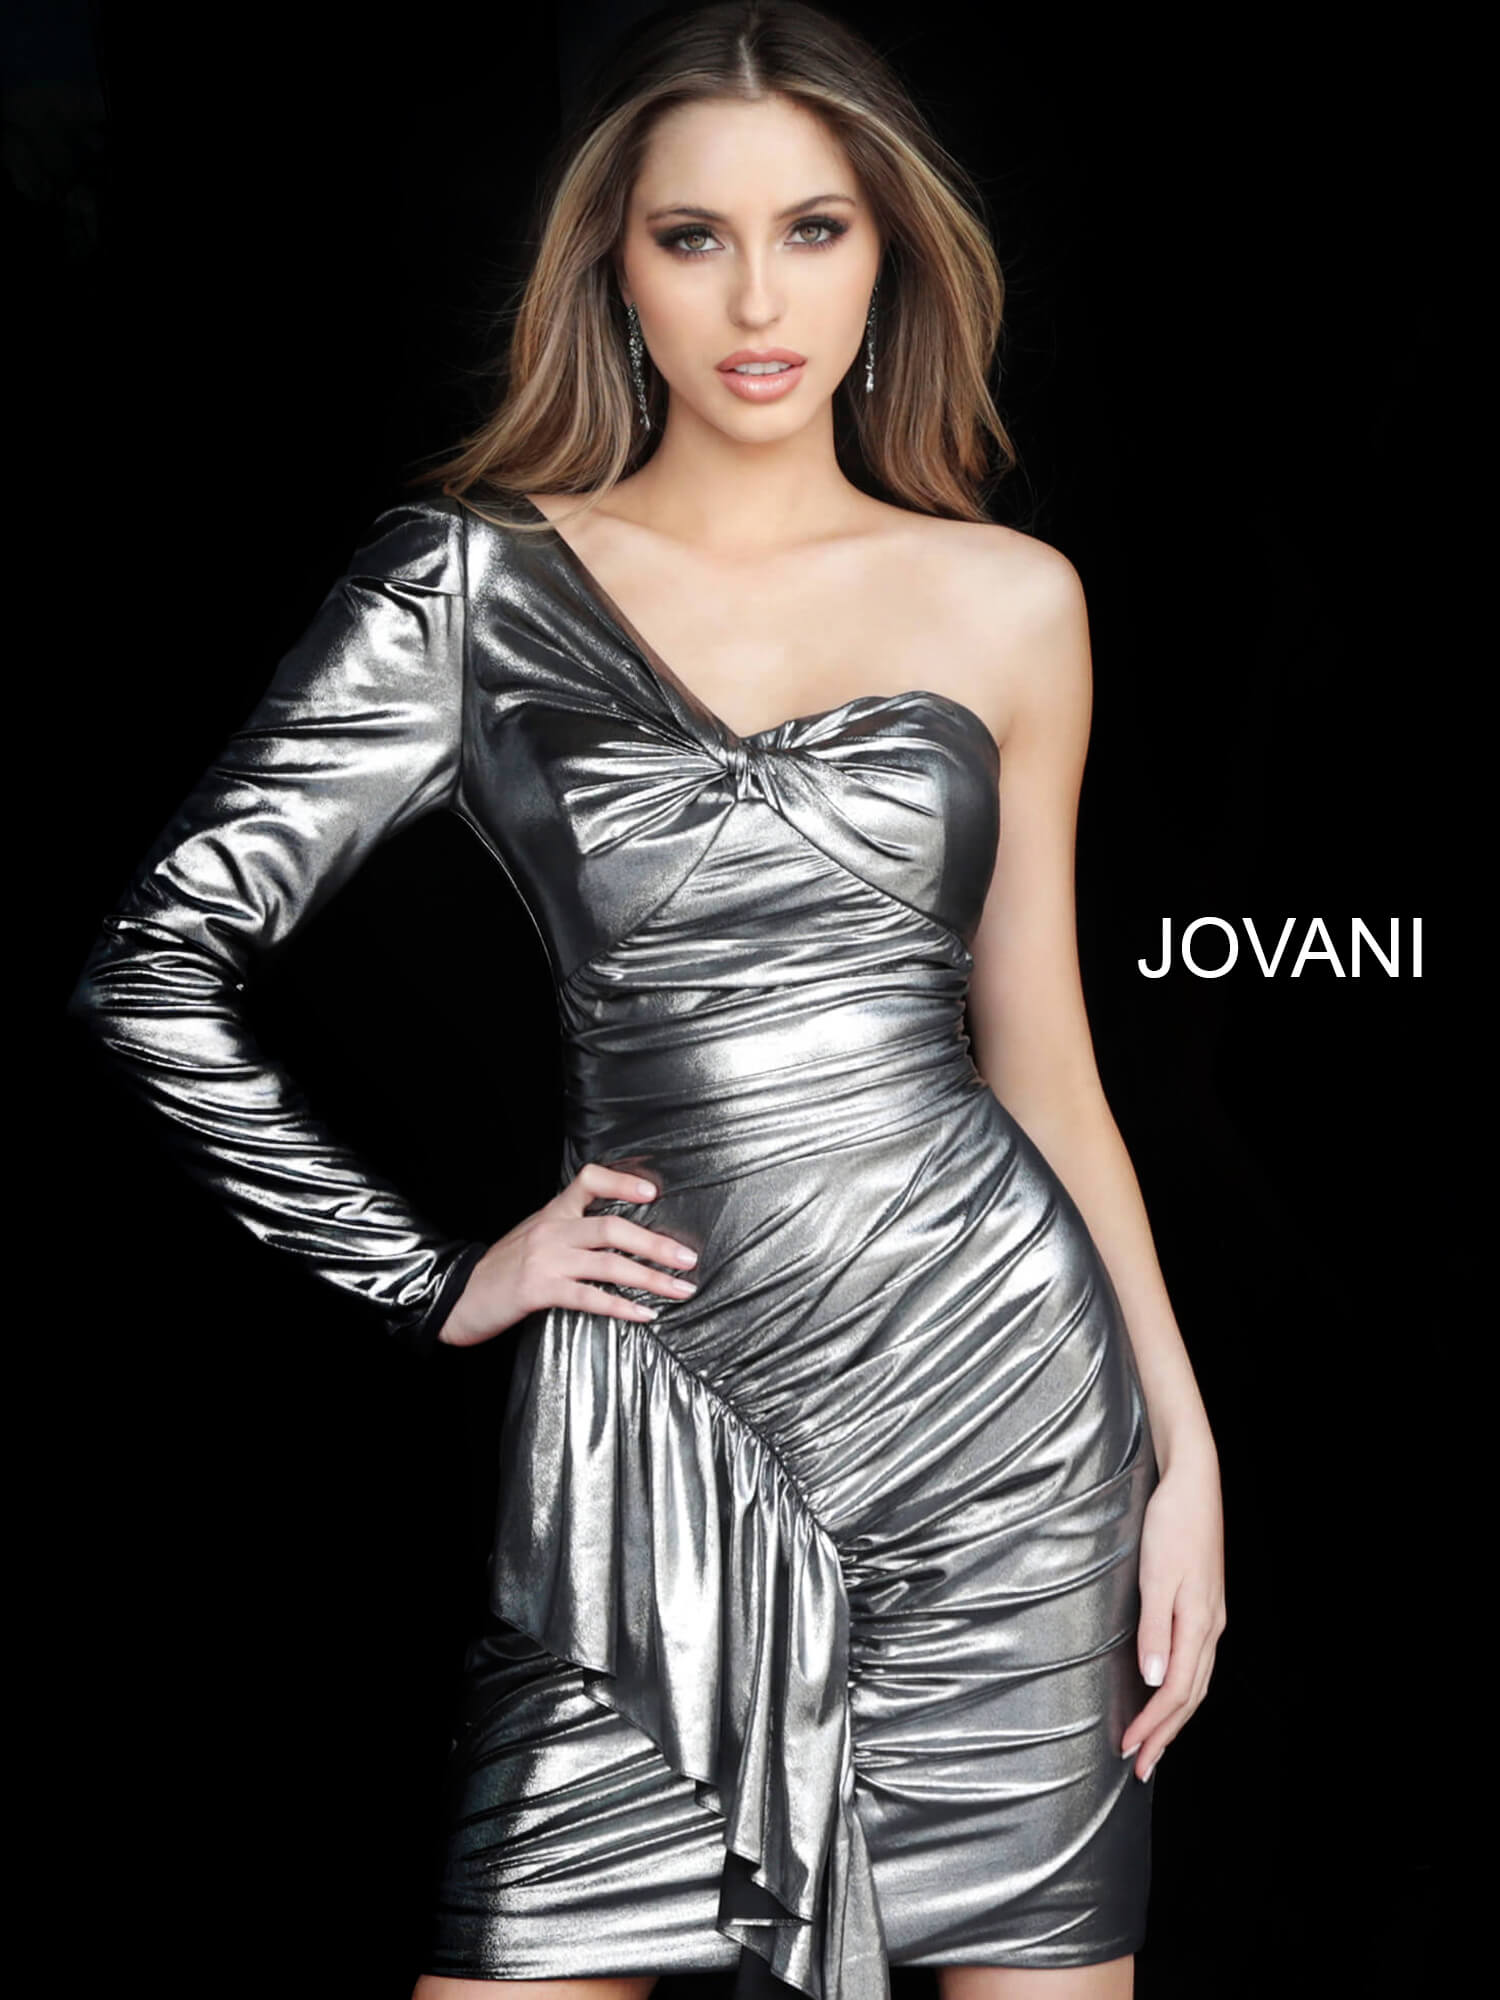 jovani Jovani 66322 Silver One Shoulder Long Sleeve Ruched Cocktail Dress